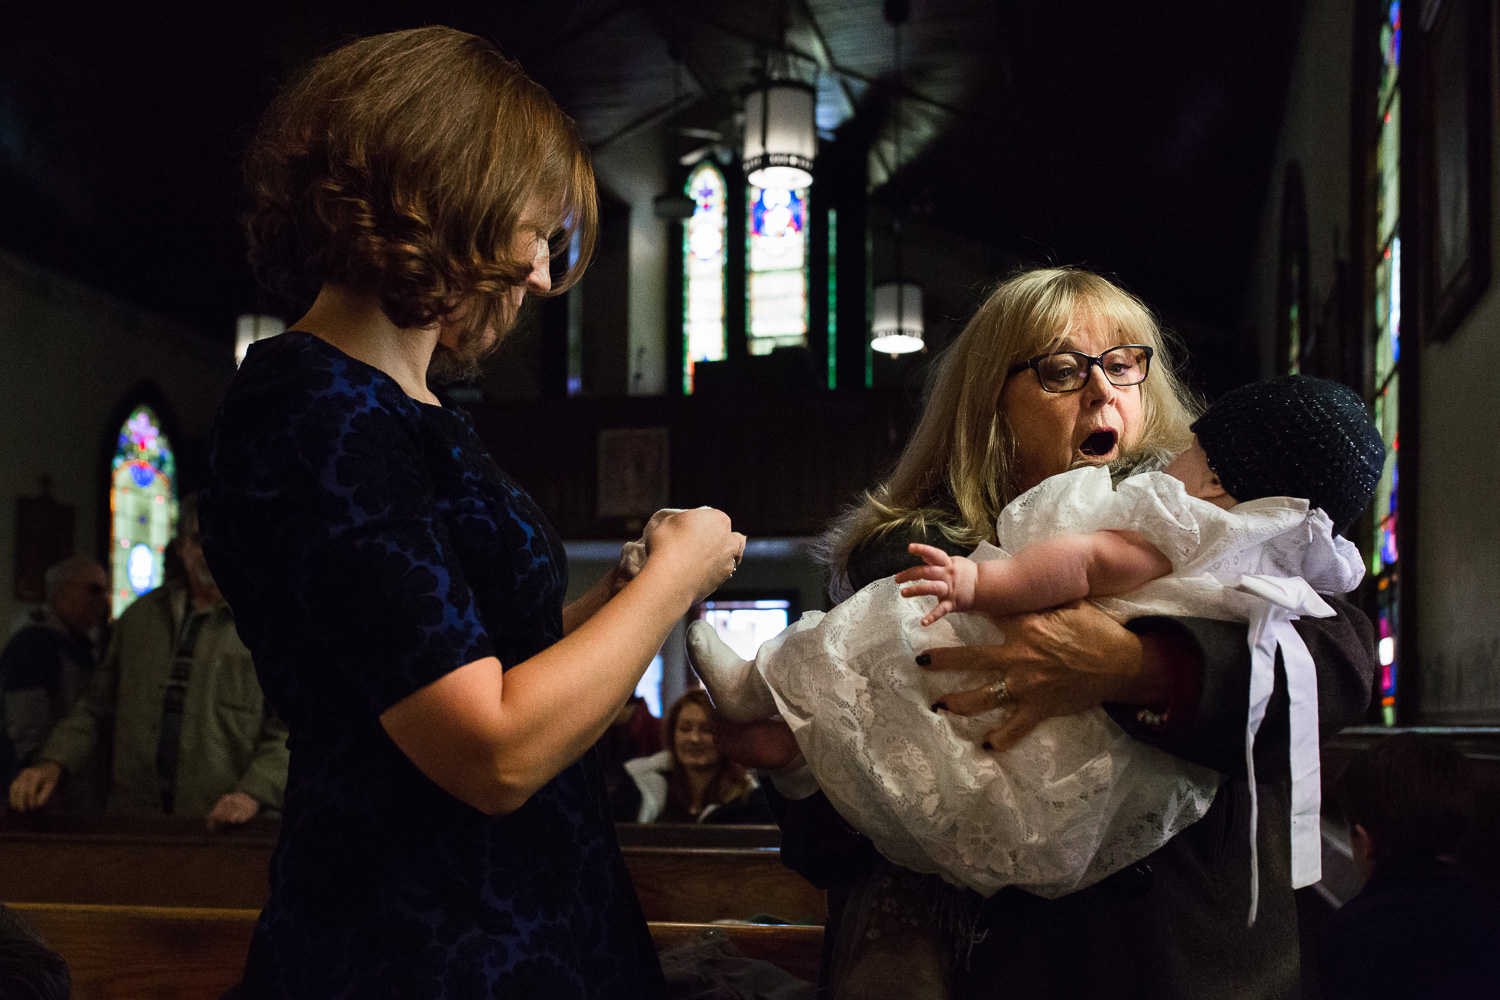 baptism-baby-event-photography-1.jpg